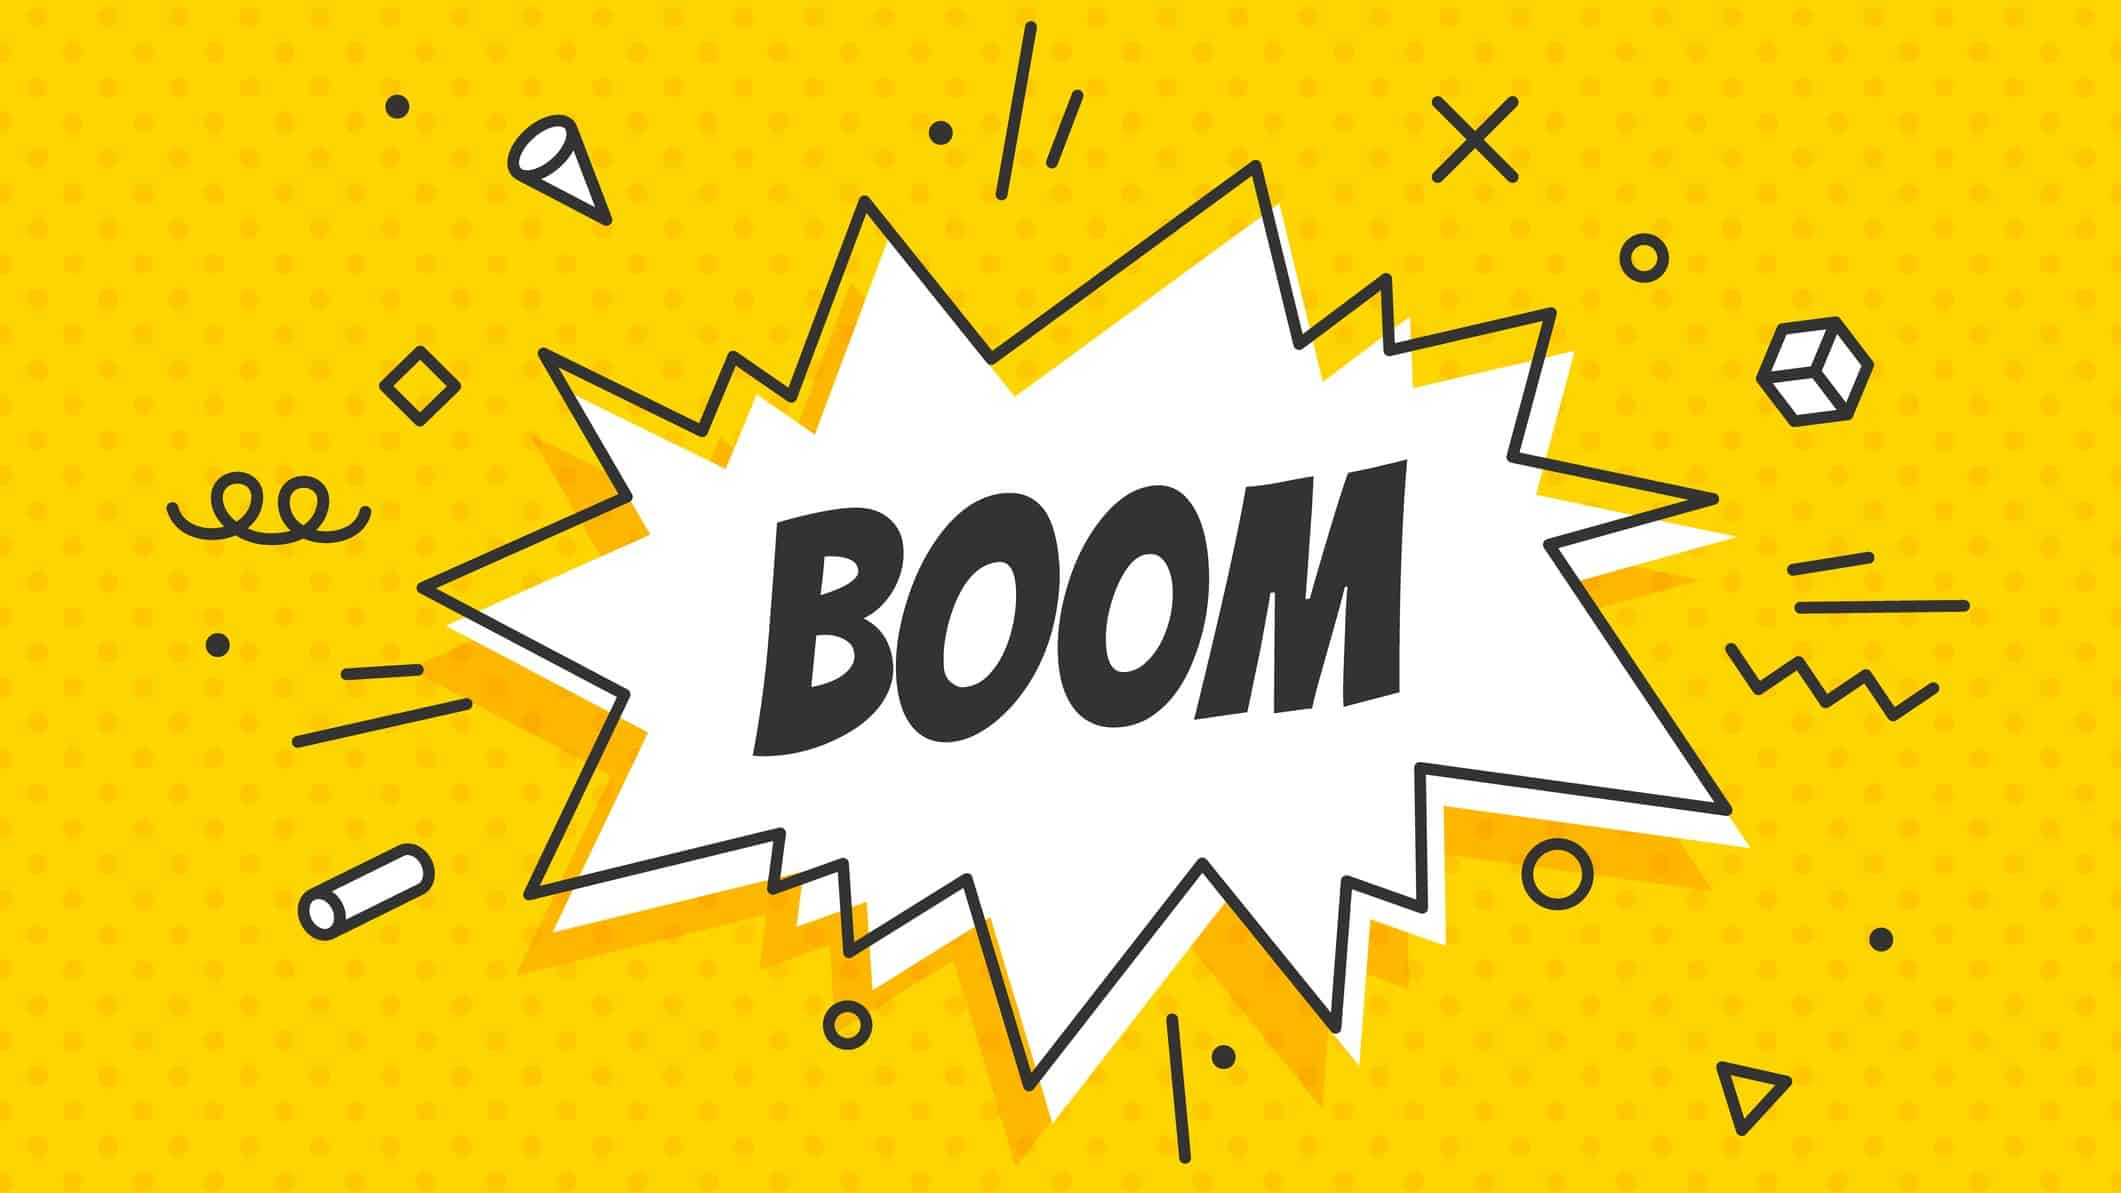 Surging ASX share price represented by the word BOOM written on bright yellow background